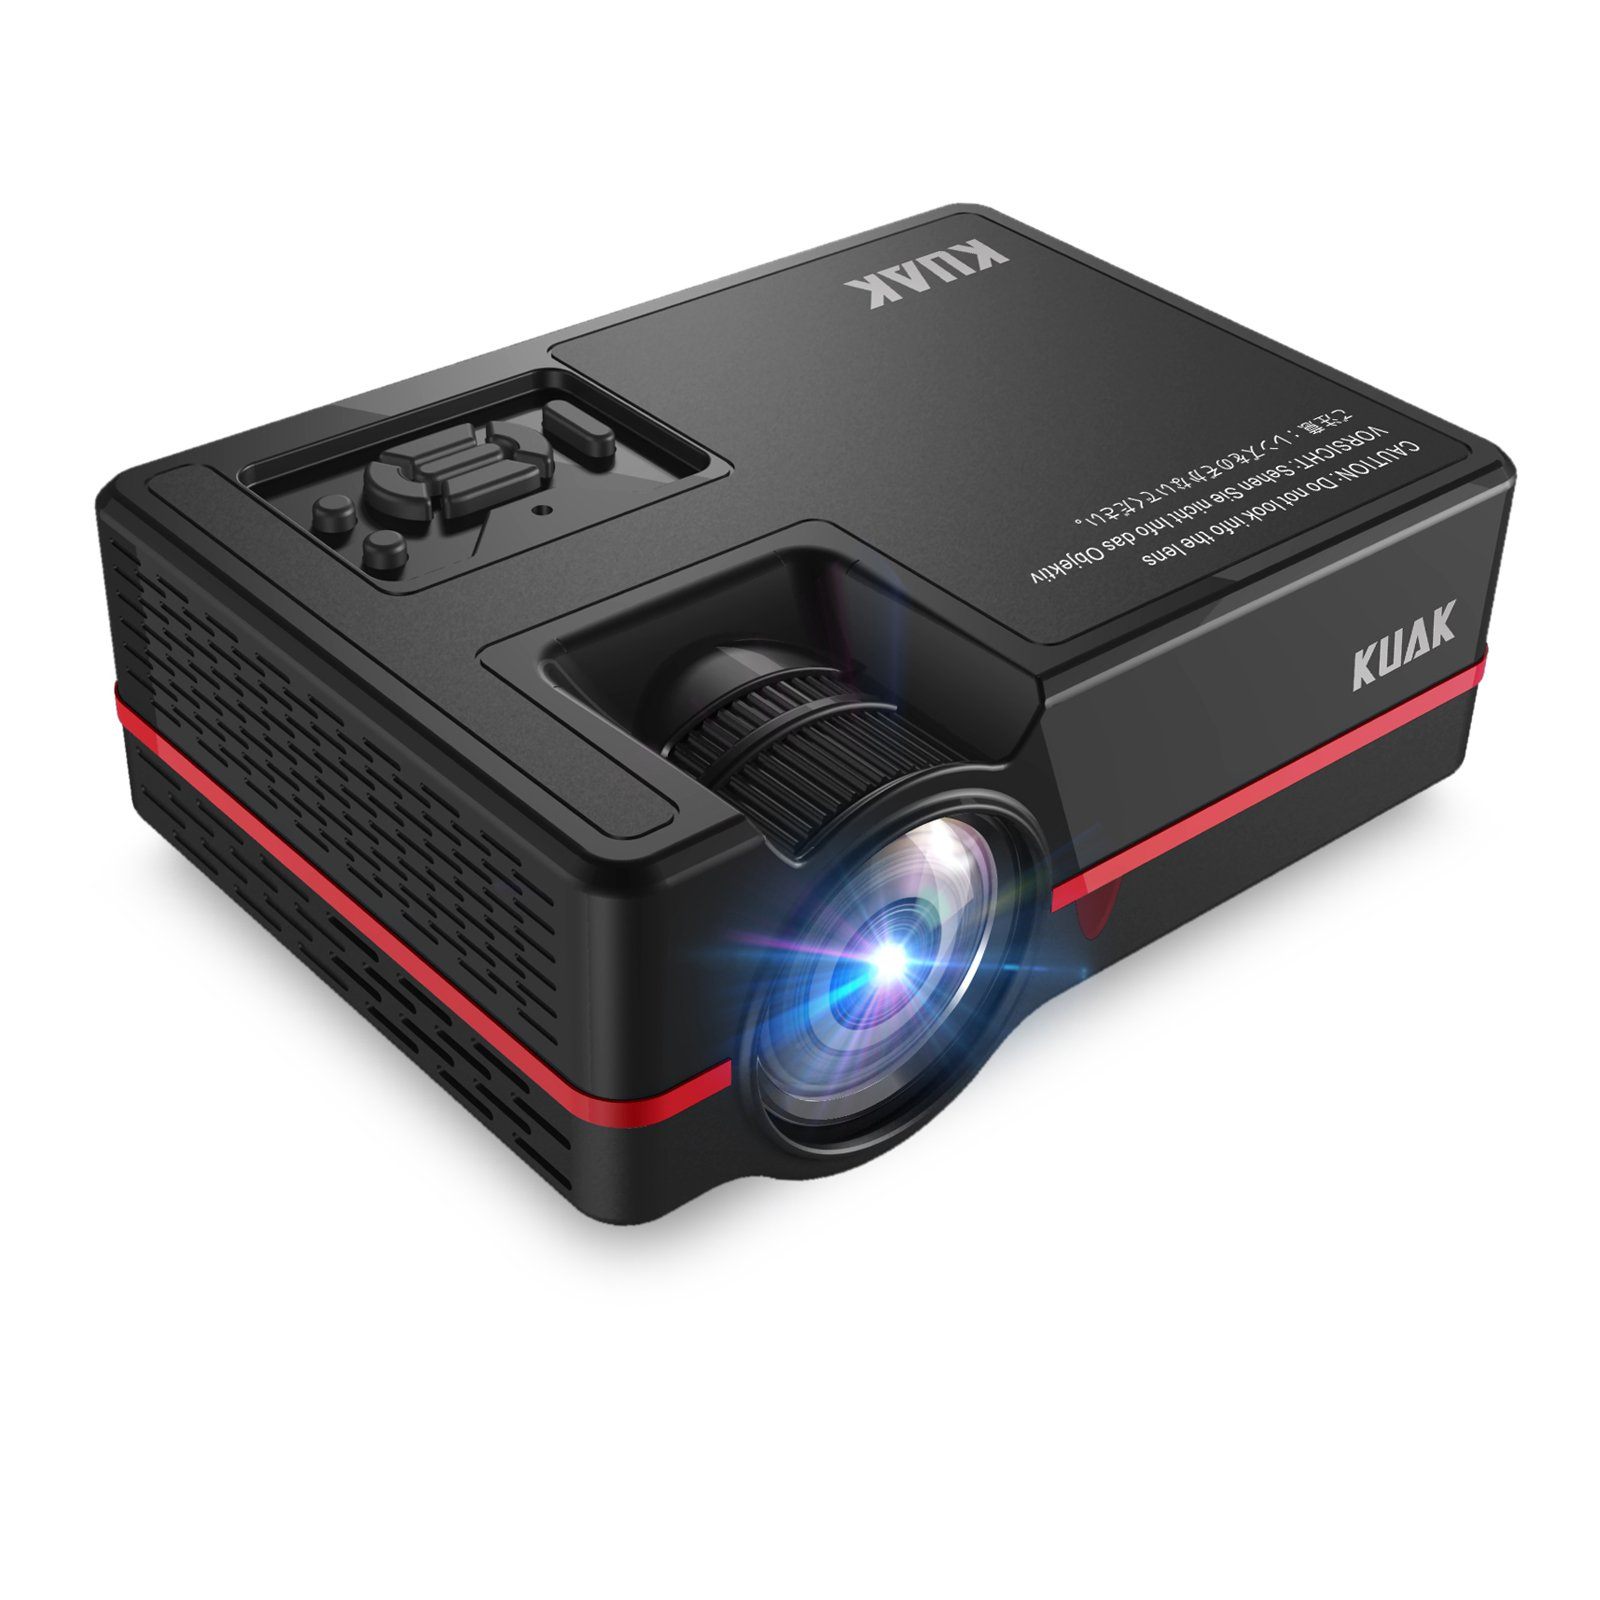 Projector, KUAK Mini Projector 2200 Lumens 170'' Display, Portable Multimedia Home Theater LED Video Projector Support HD 1080P HDMI VGA USB SD AV TV for Smartphone Laptop Fire TV Stick etc, HT30&Red